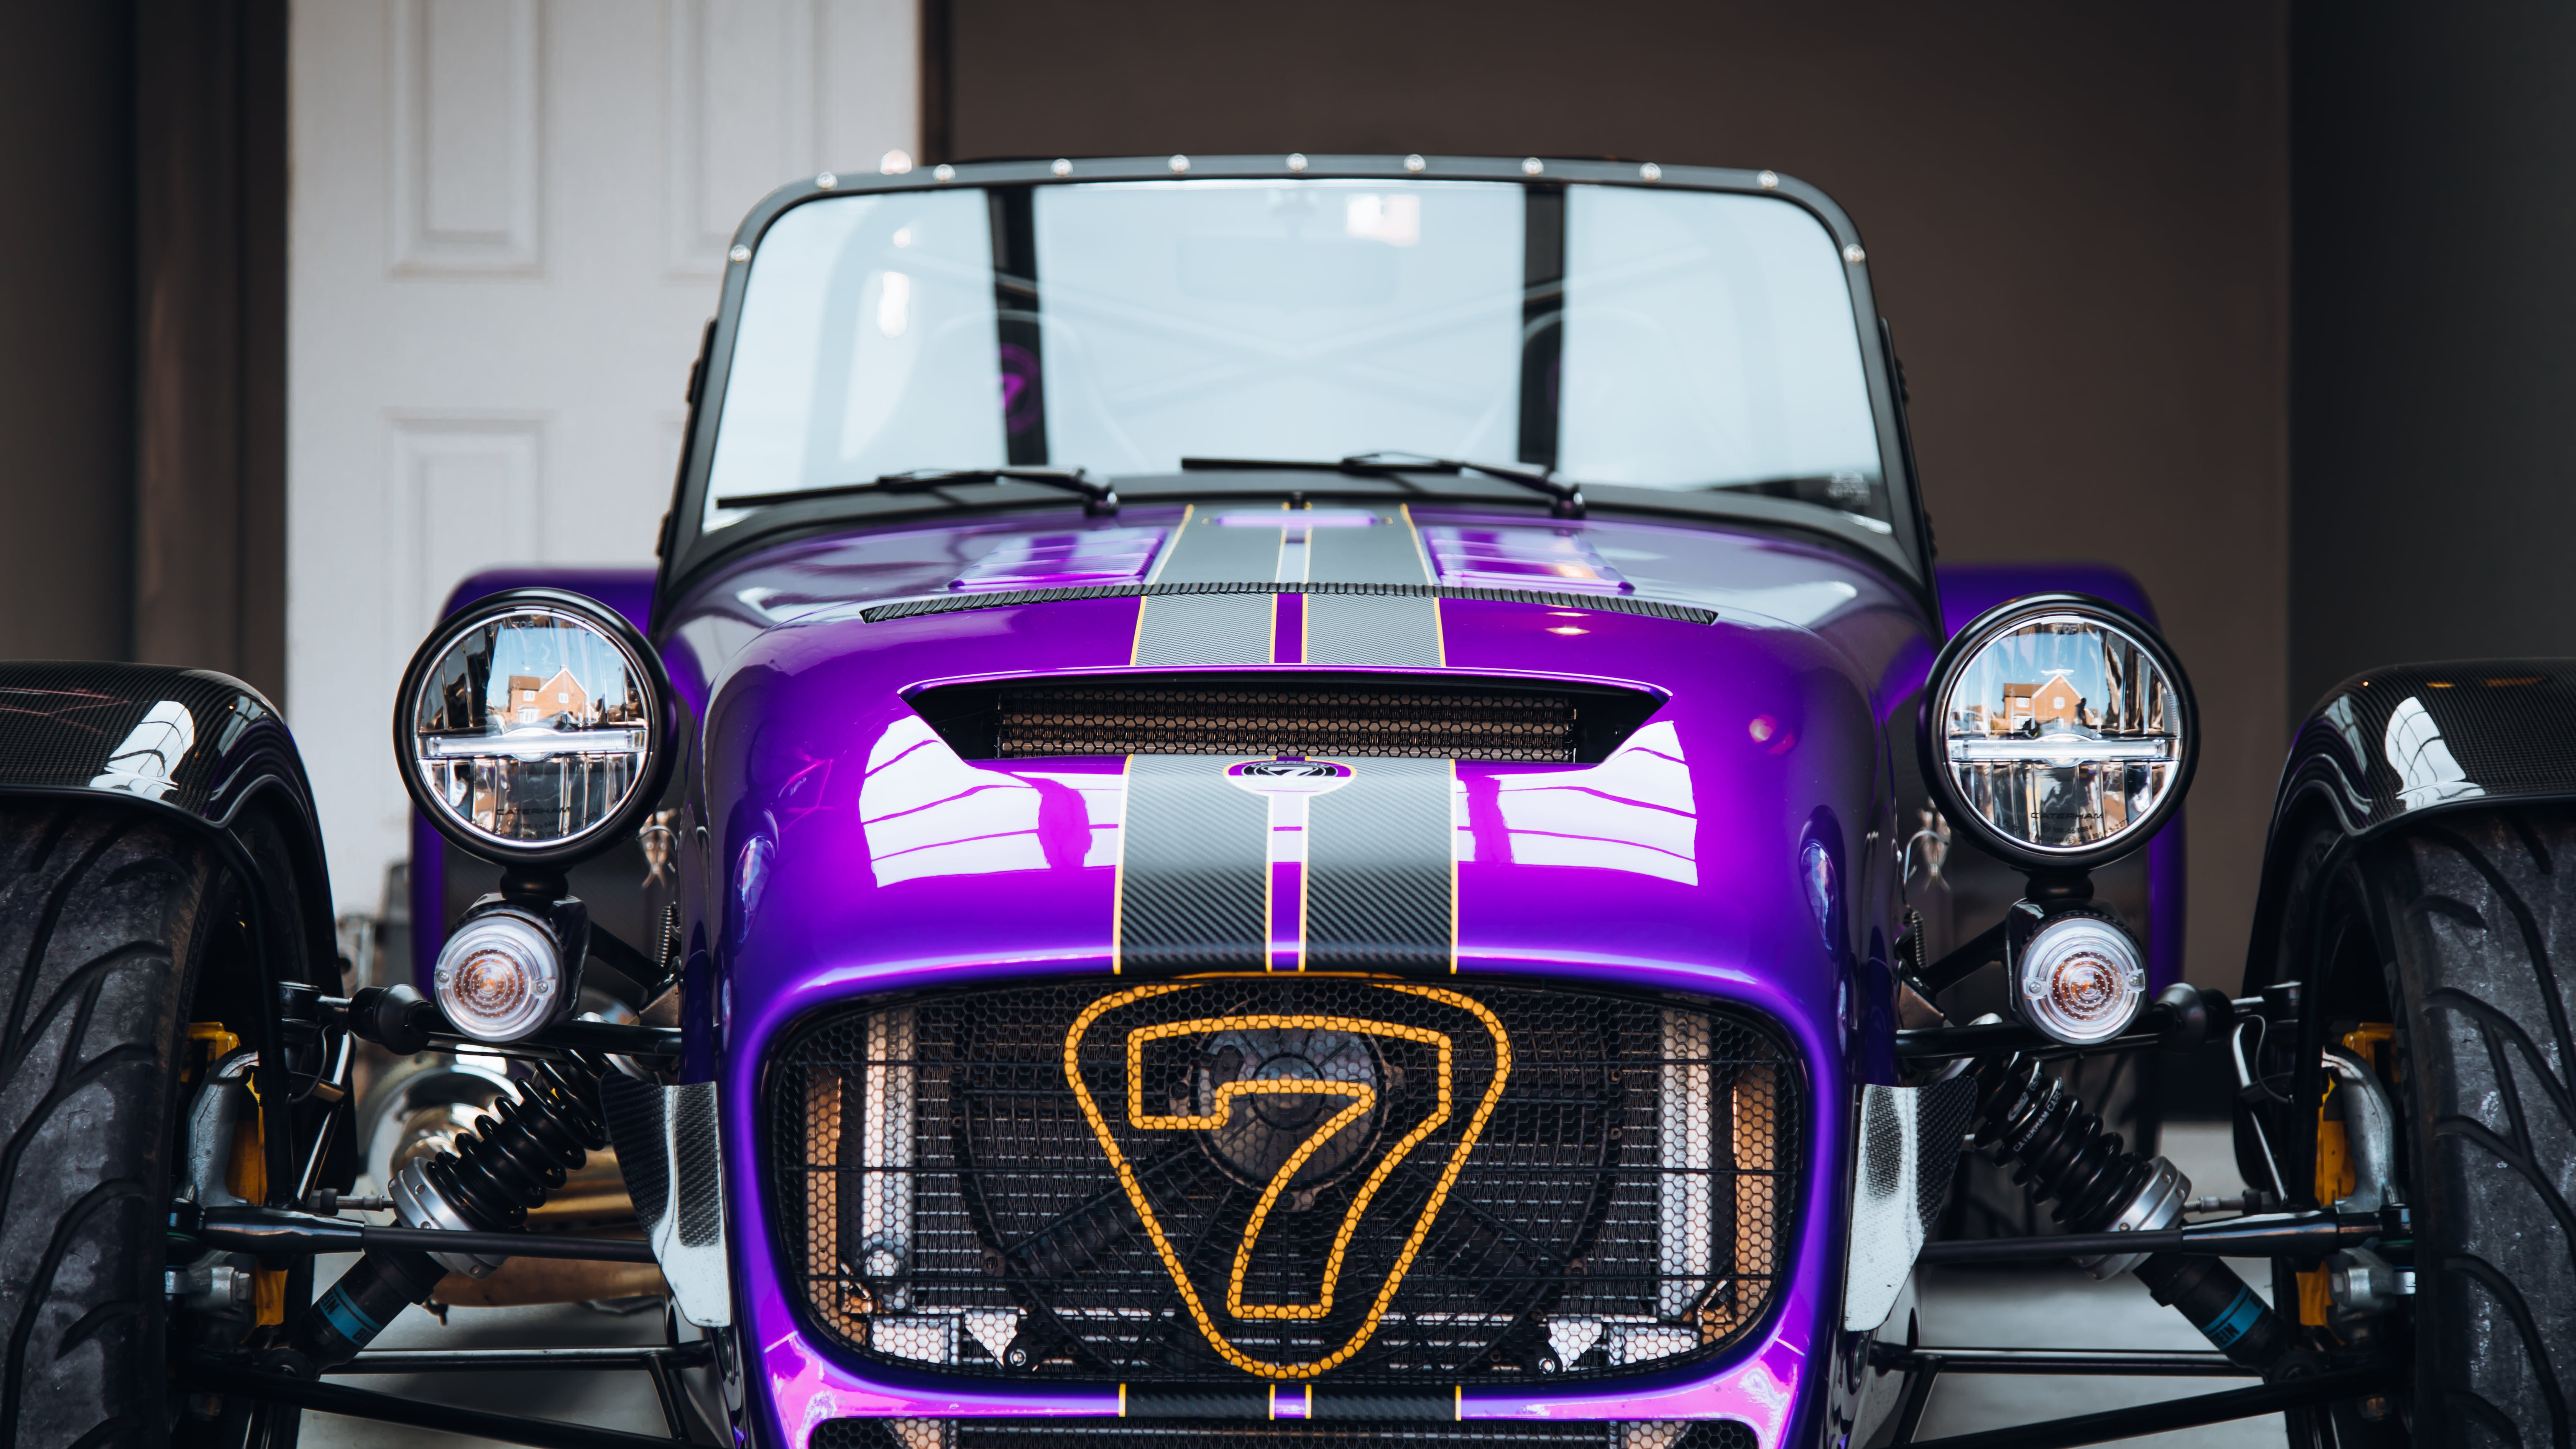 Caterham Cars Ltd Welcomes New Owners